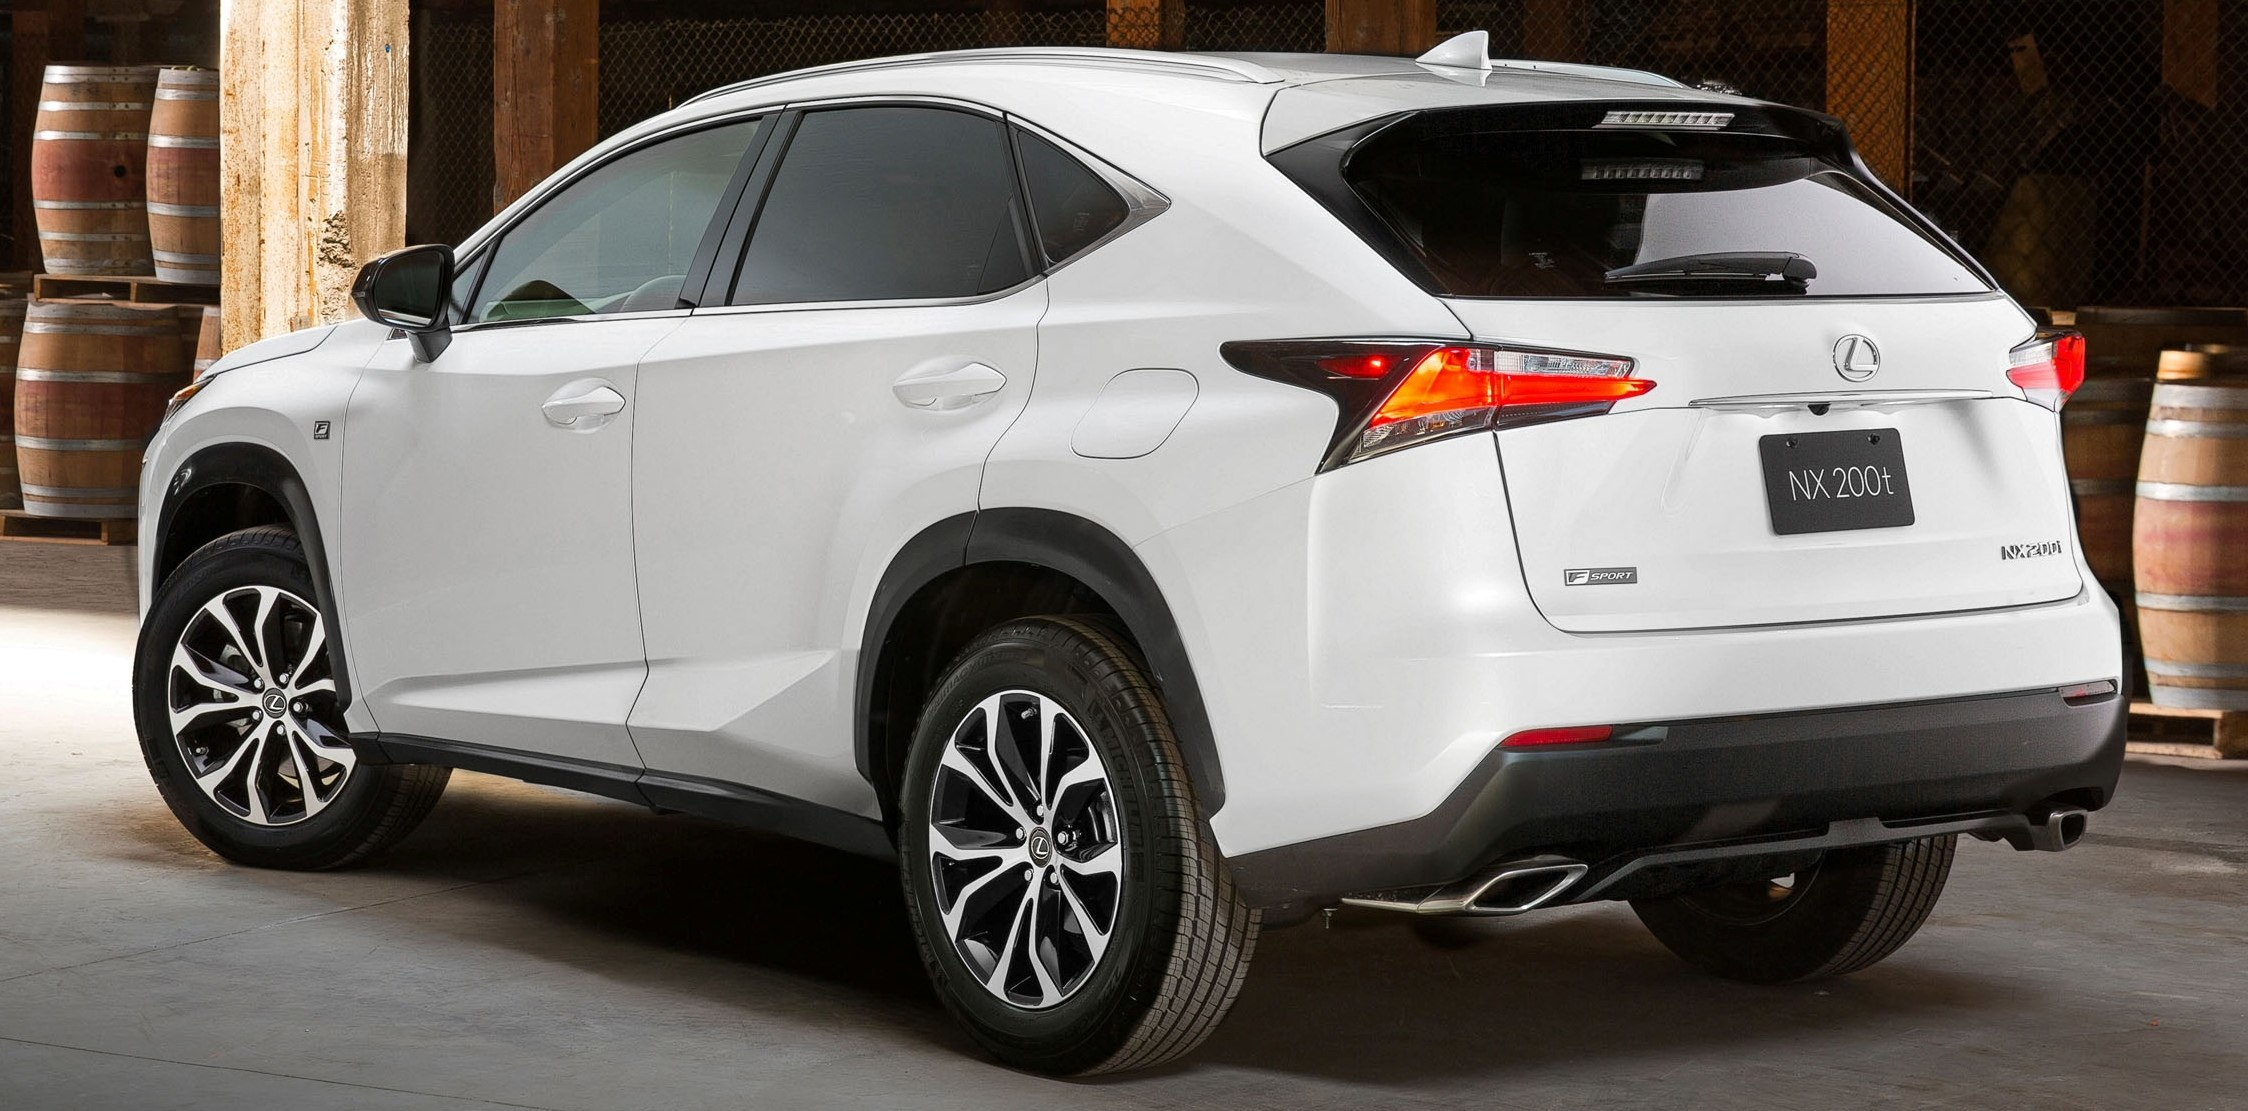 2015 lexus nx 200t f sport 020 car revs. Black Bedroom Furniture Sets. Home Design Ideas